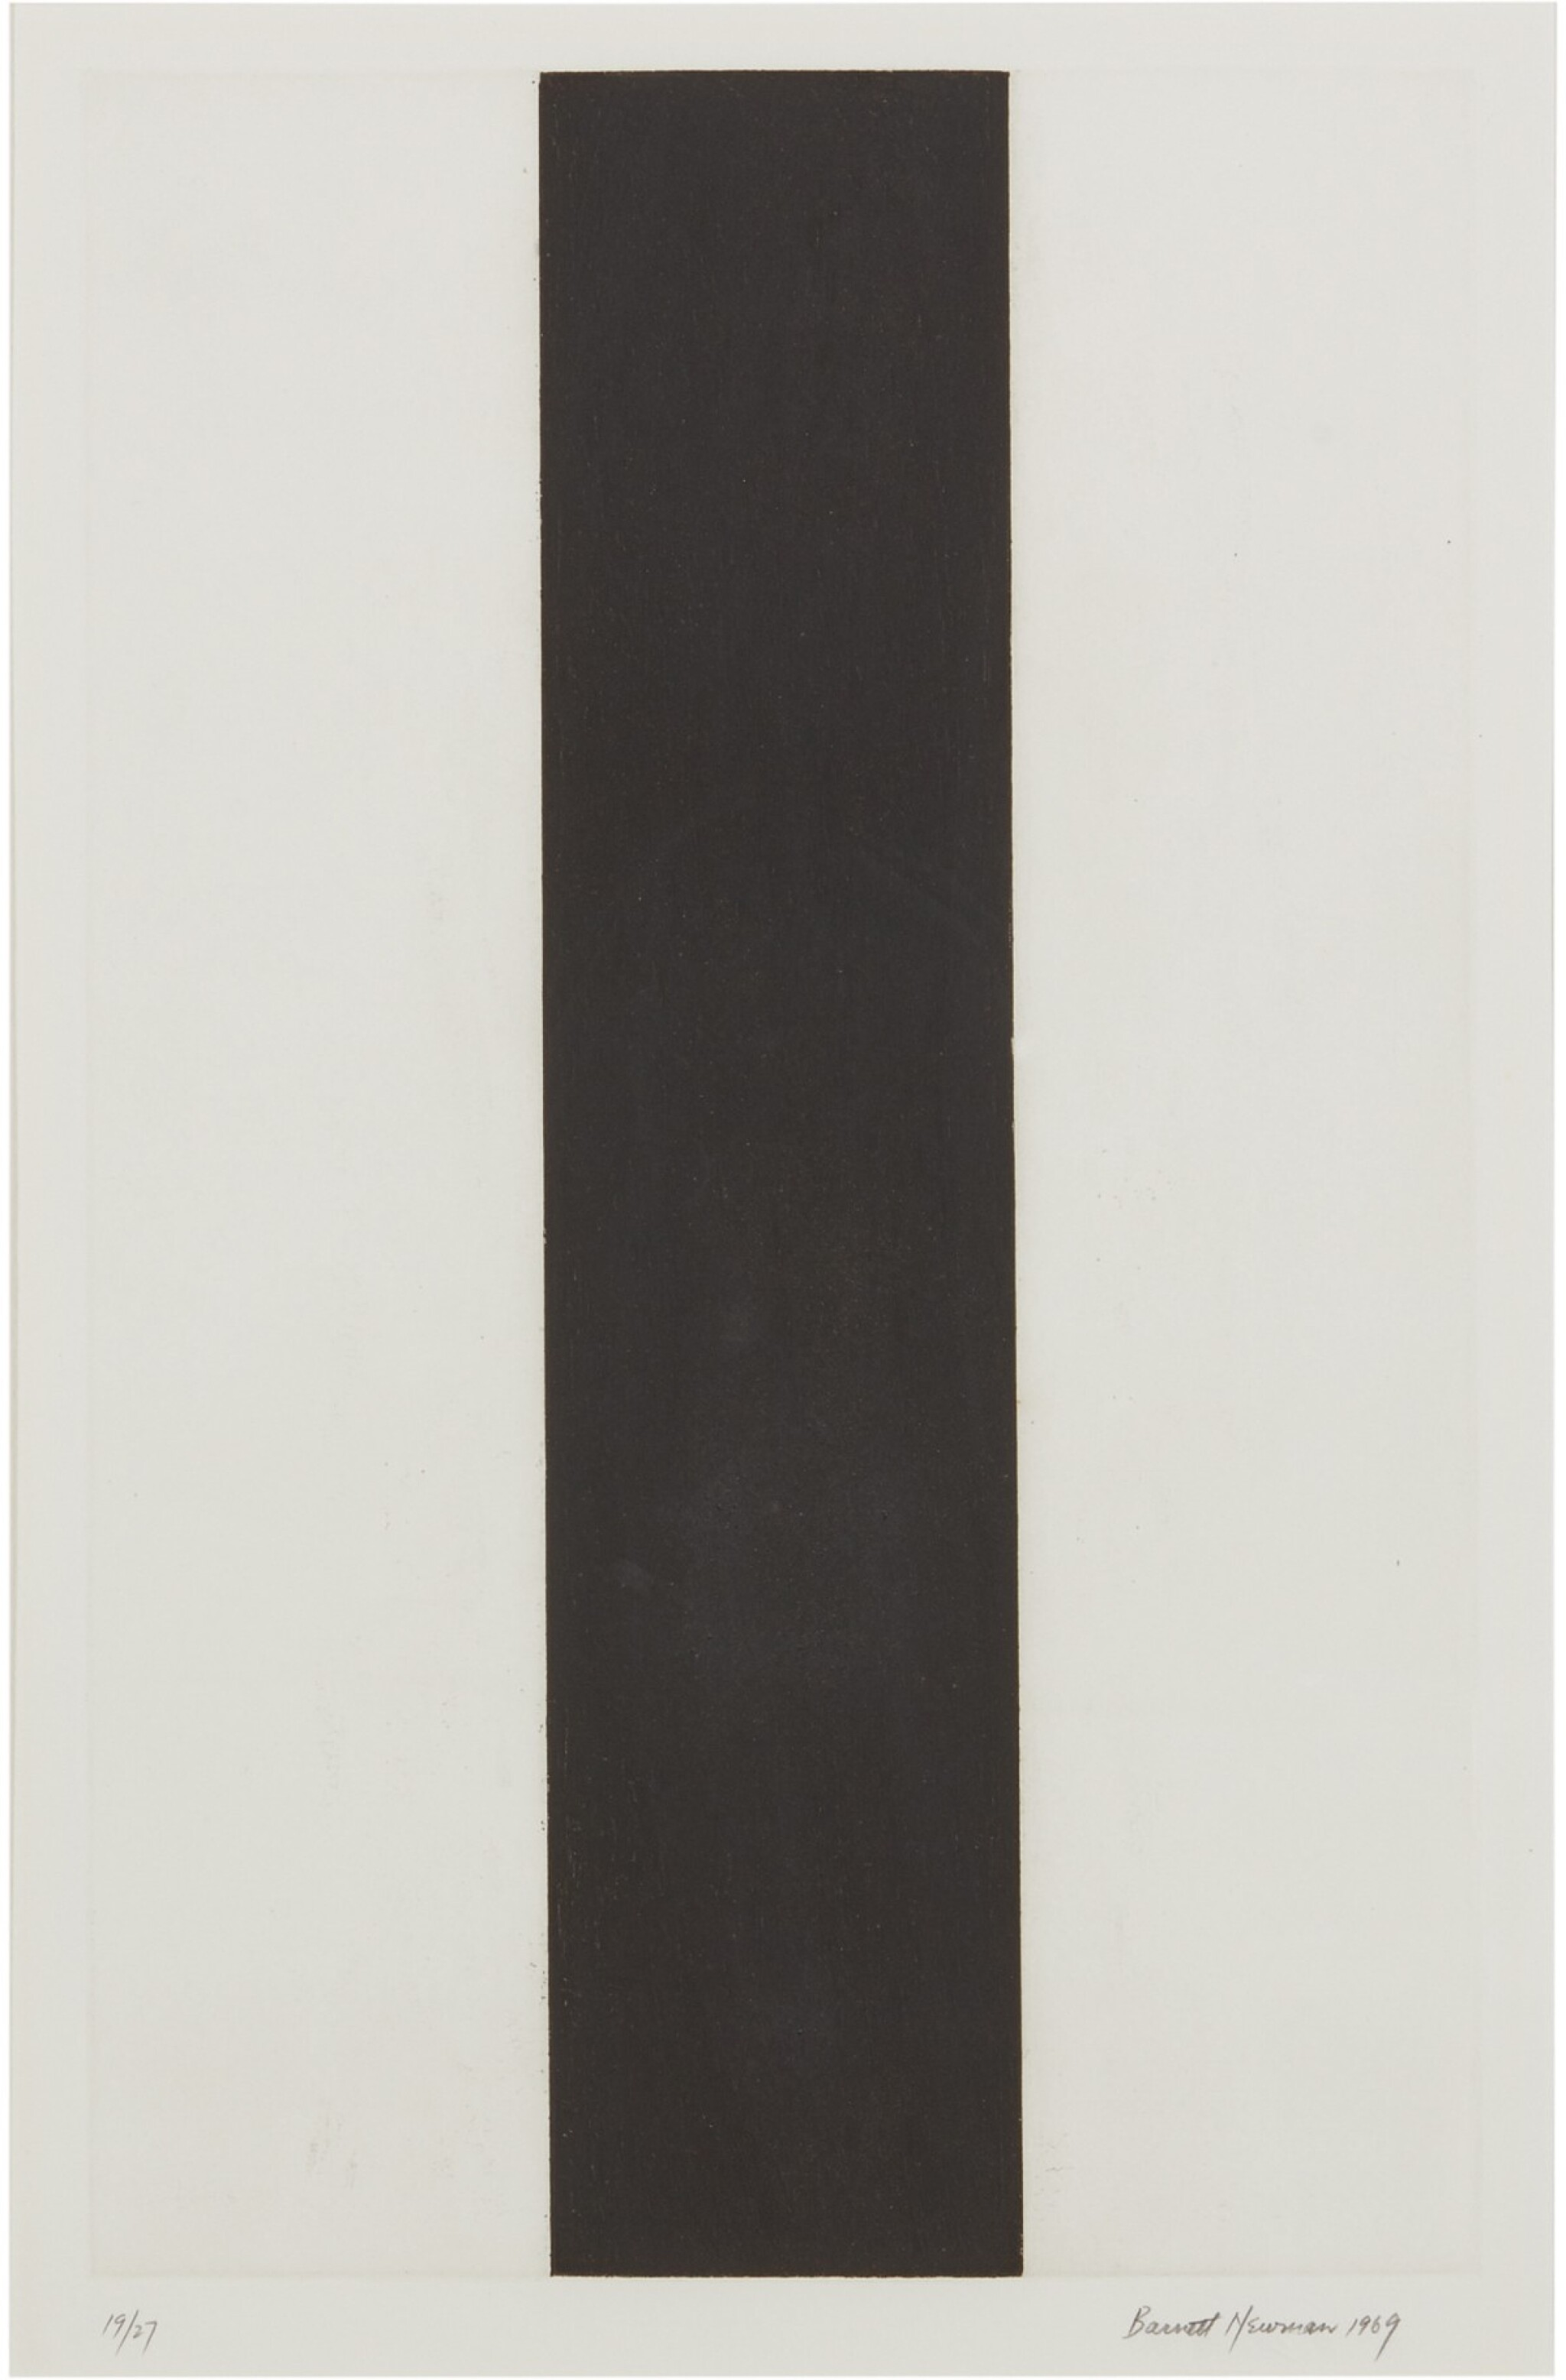 View 1 of Lot 205. BARNETT NEWMAN | UNTITLED ETCHING 2.